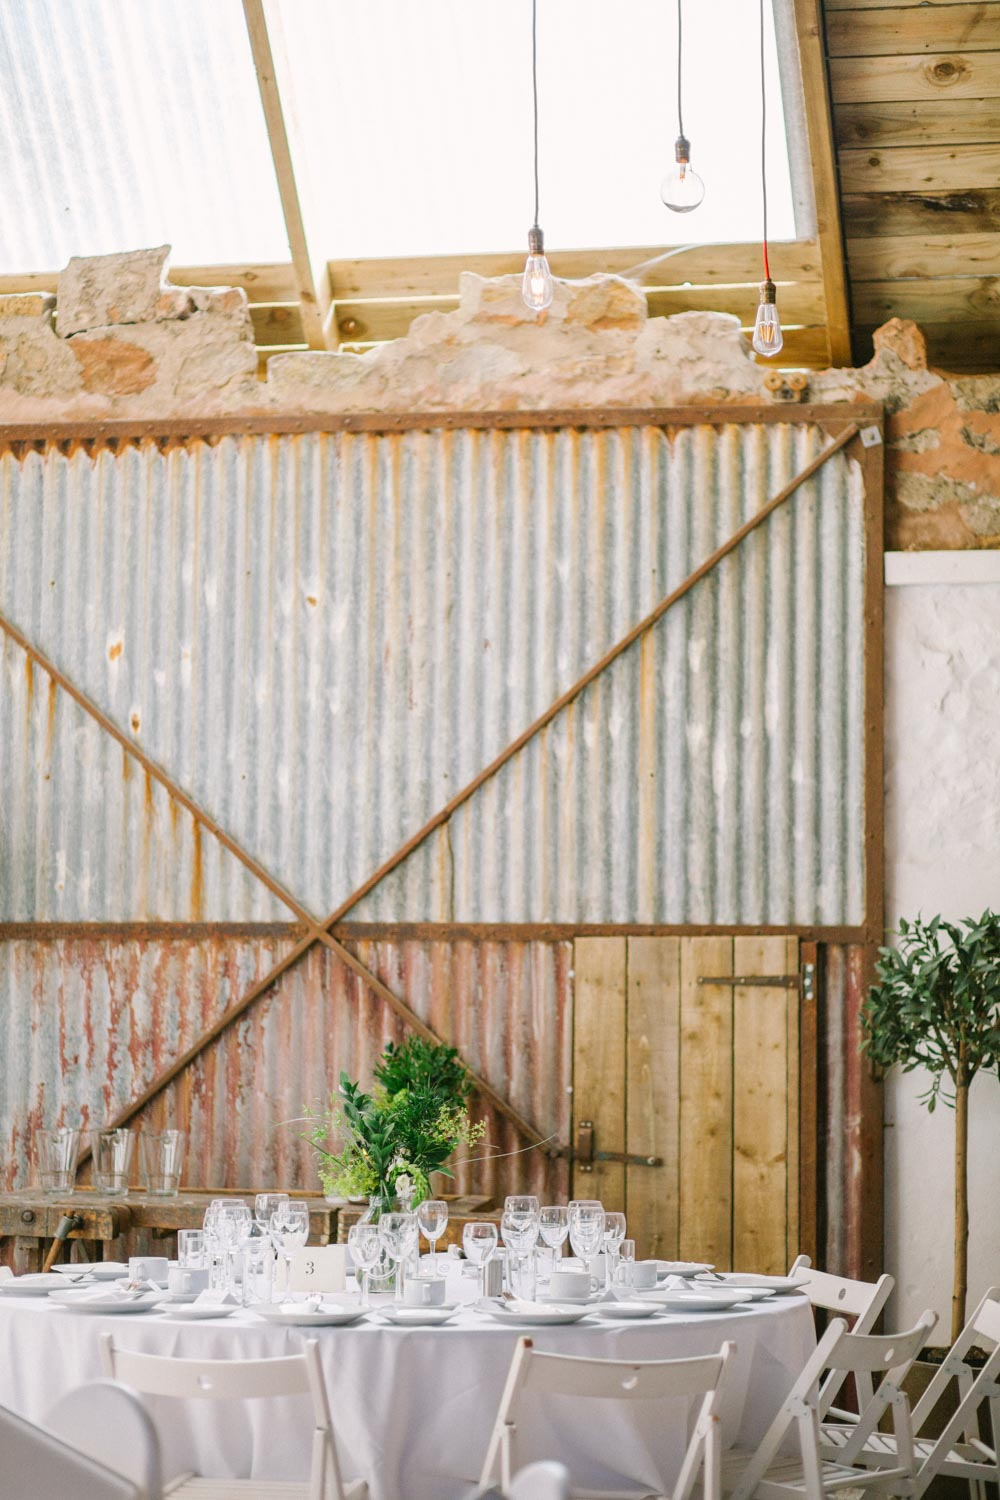 Cow Shed Crail Wedding Photography | Rustic barn venue Scotland | Alternative Wedding Photography